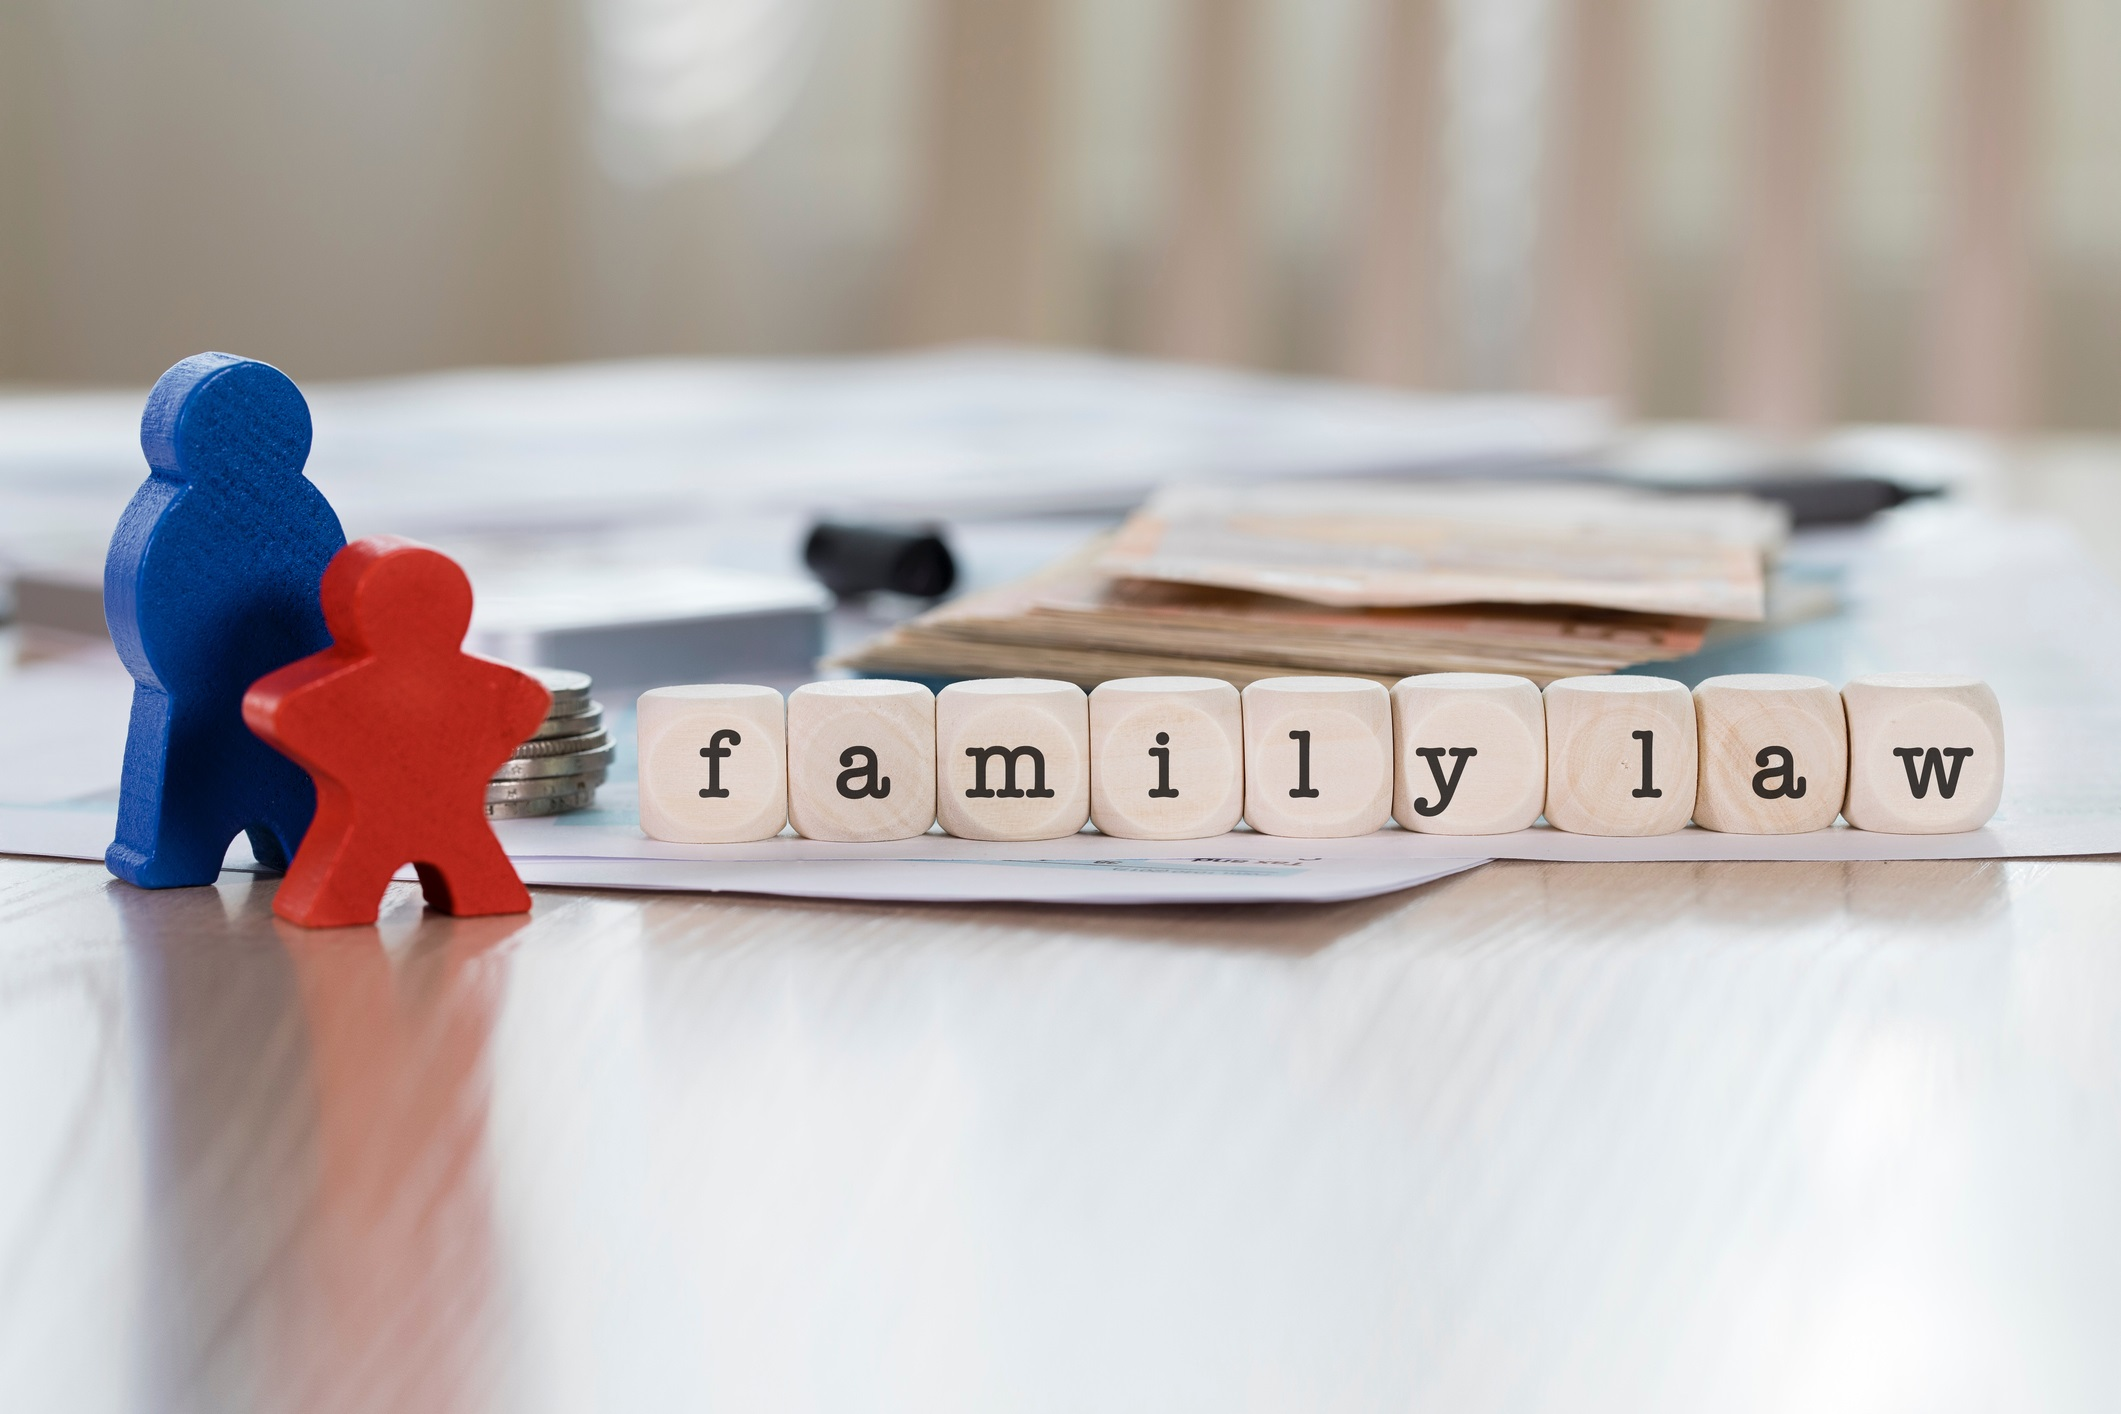 Word FAMILY LAW composed of wooden letters.